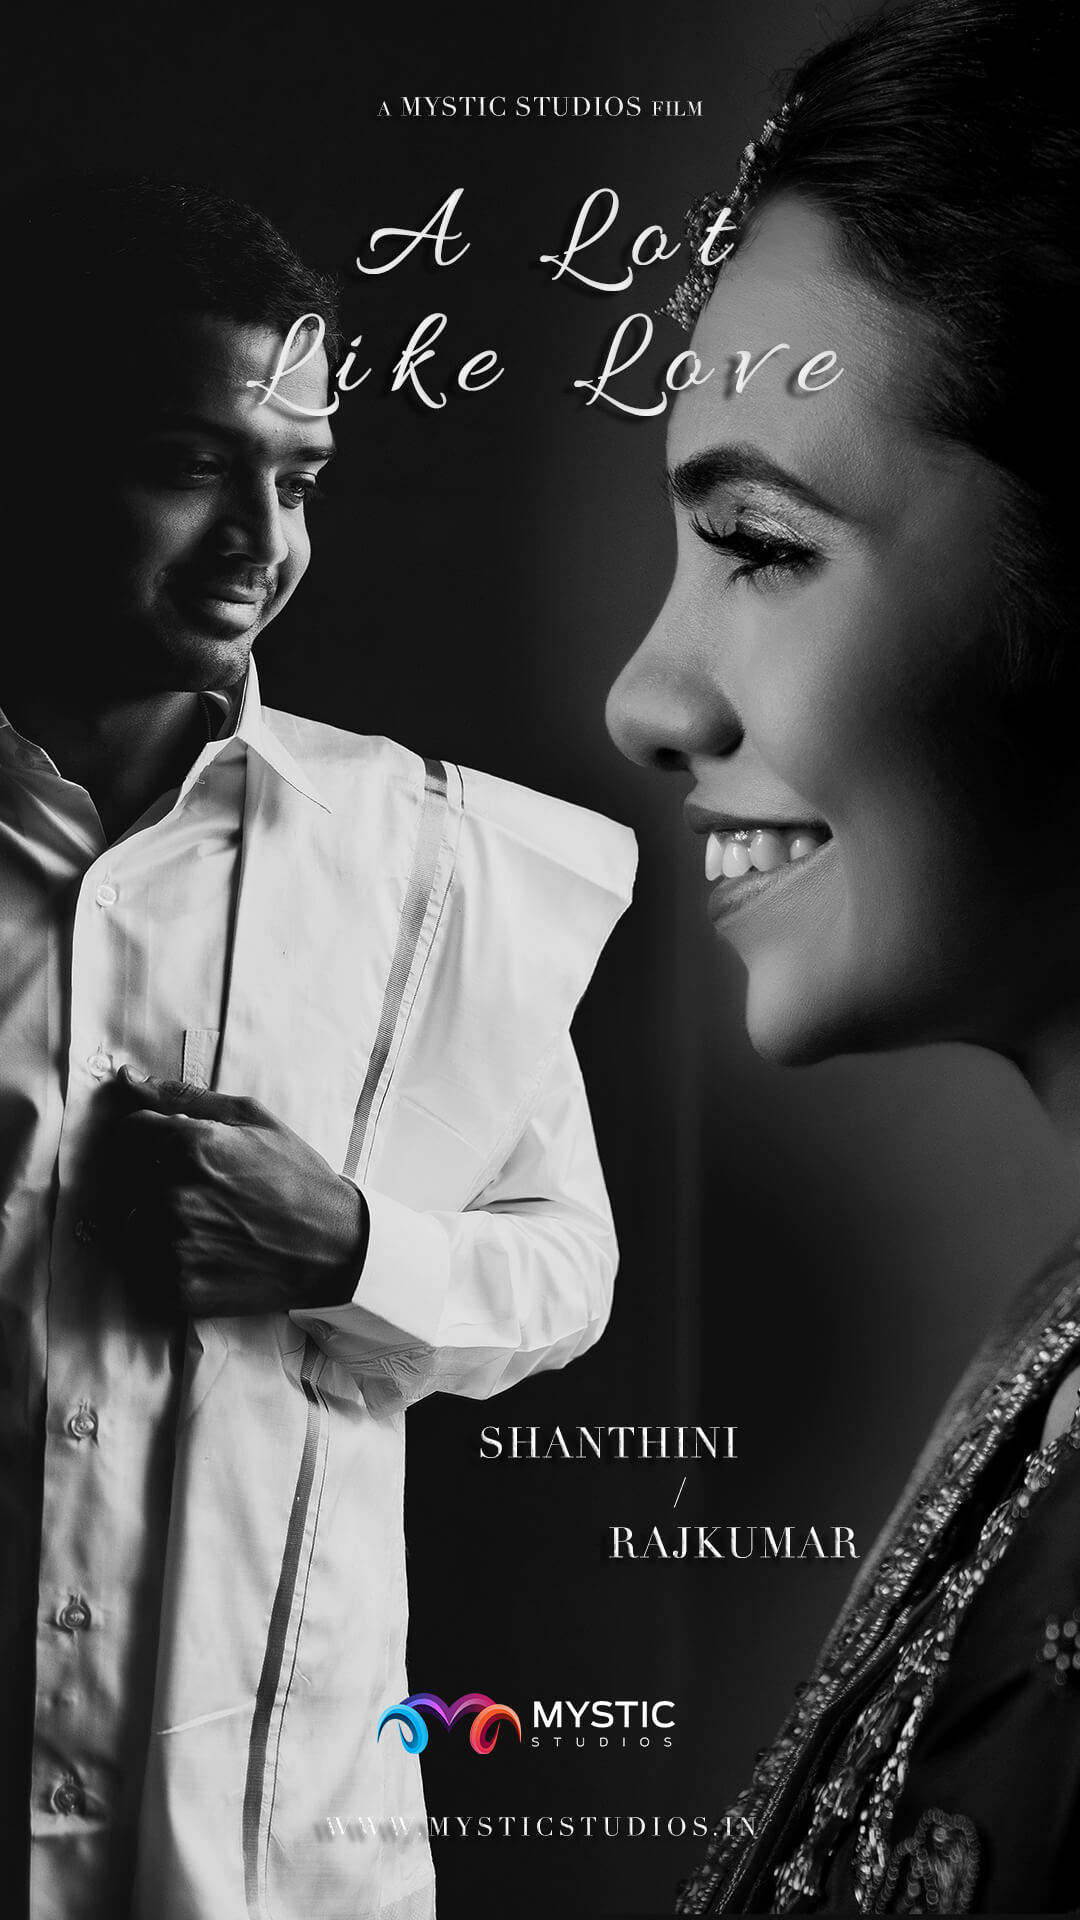 https://mysticstudios.in/rajkumar-shanthini-wedding/